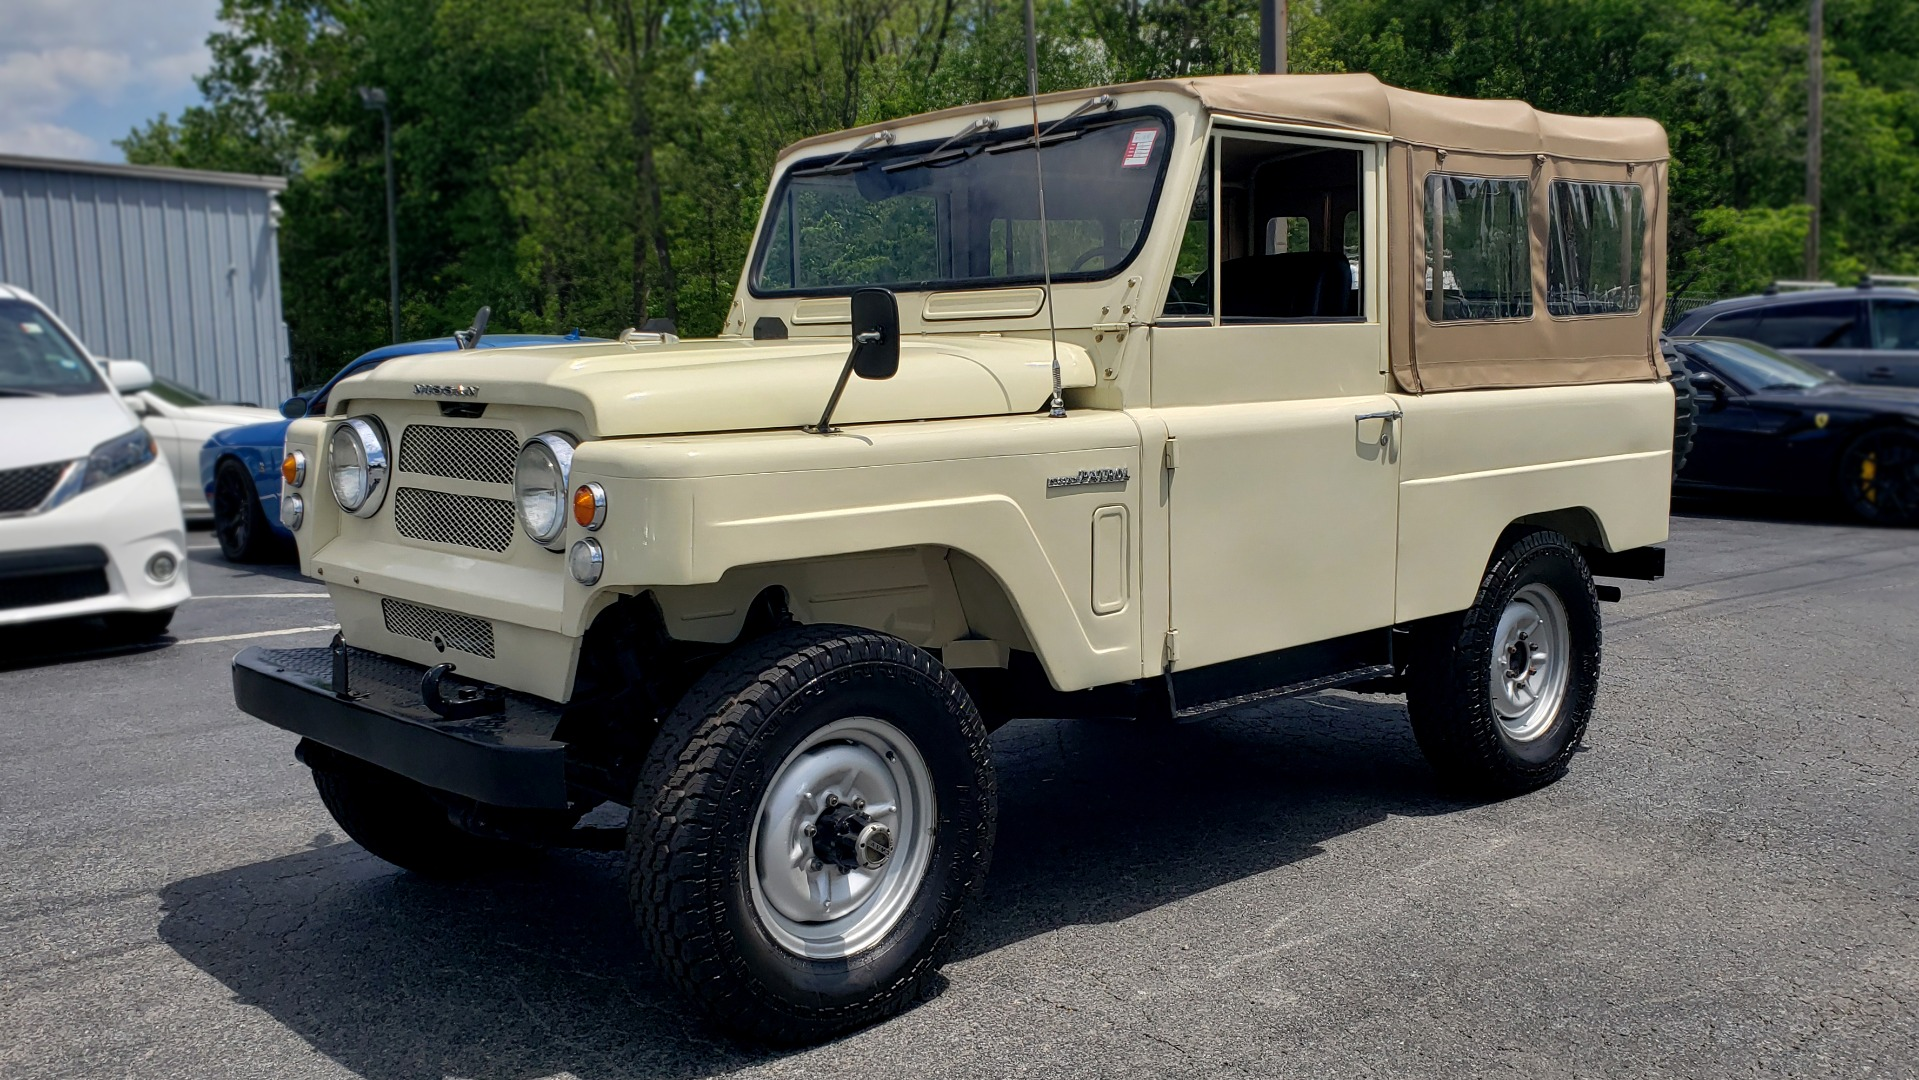 Used 1978 Nissan PATROL 4x4 / SOFT-TOP / 6-CYL / MANUAL / SEATS-9 / FULLY RESTORED for sale $32,400 at Formula Imports in Charlotte NC 28227 1